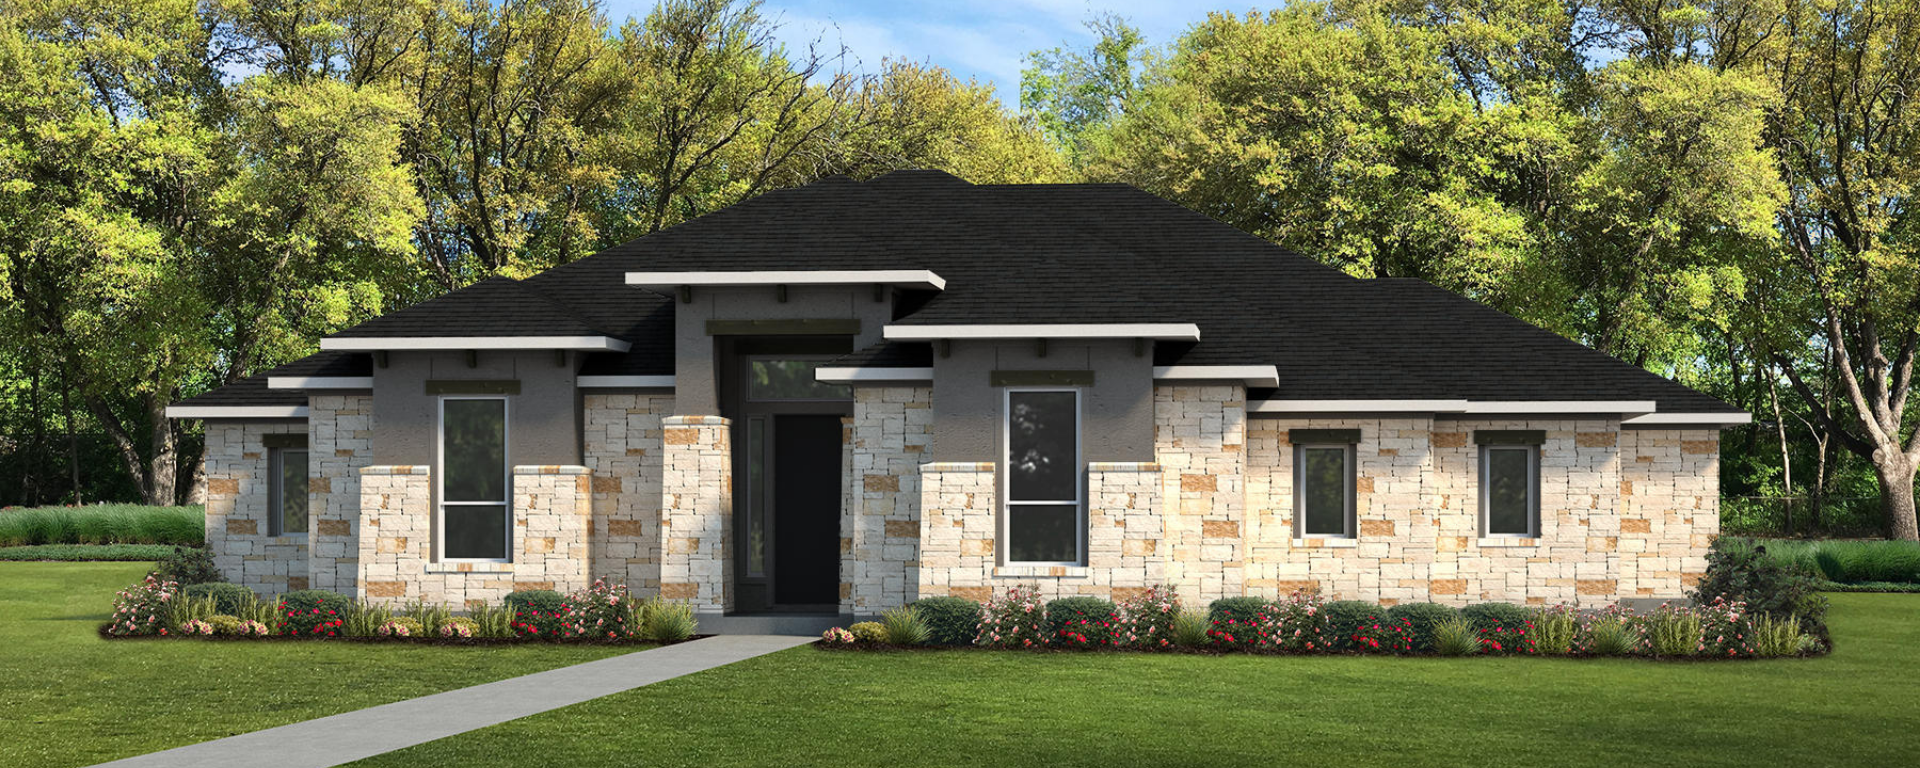 The Palo Duro Custom Home Plan from Tilson Homes